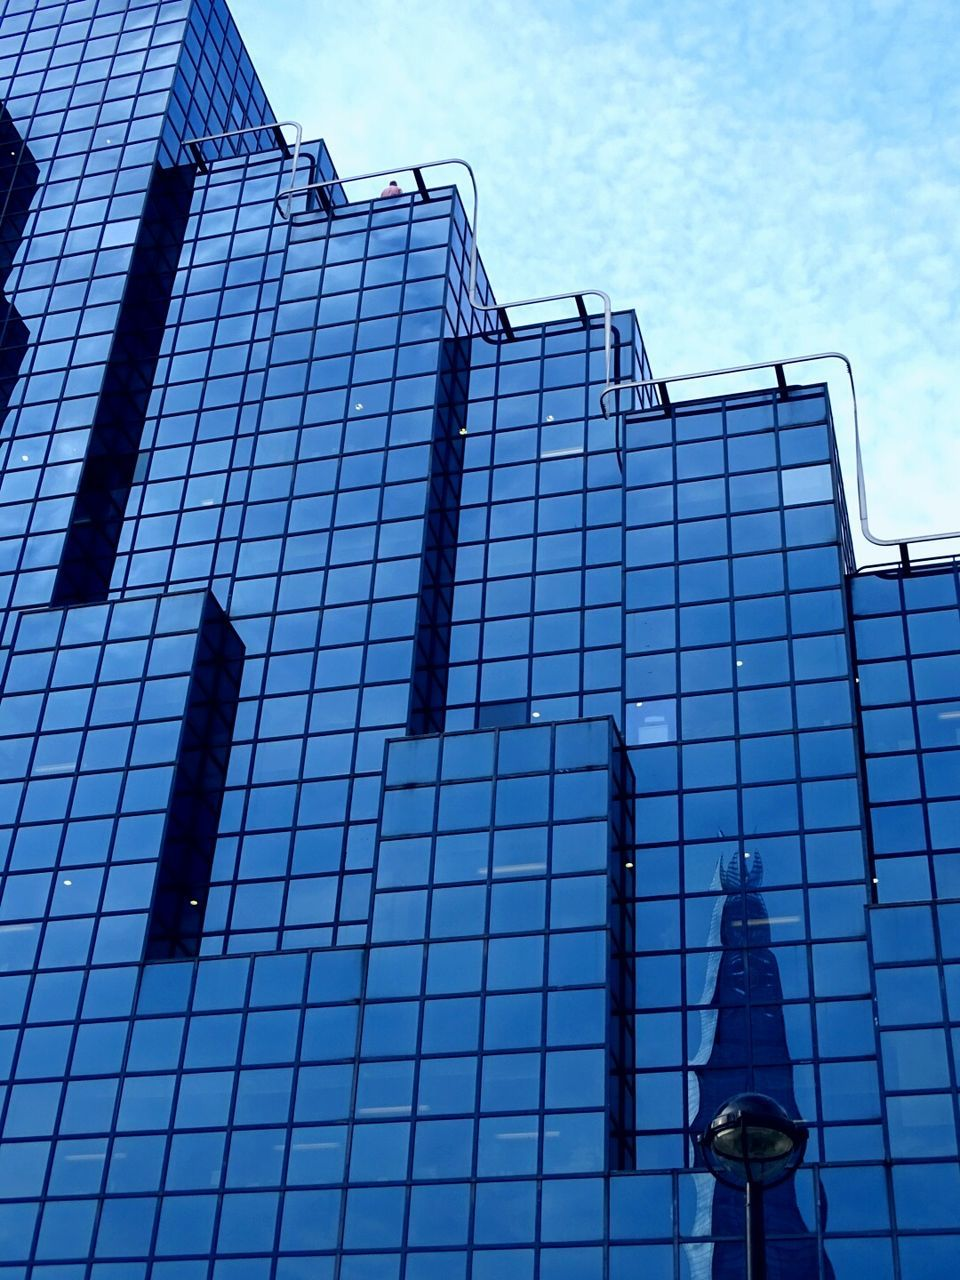 architecture, built structure, building exterior, low angle view, day, outdoors, blue, modern, sky, no people